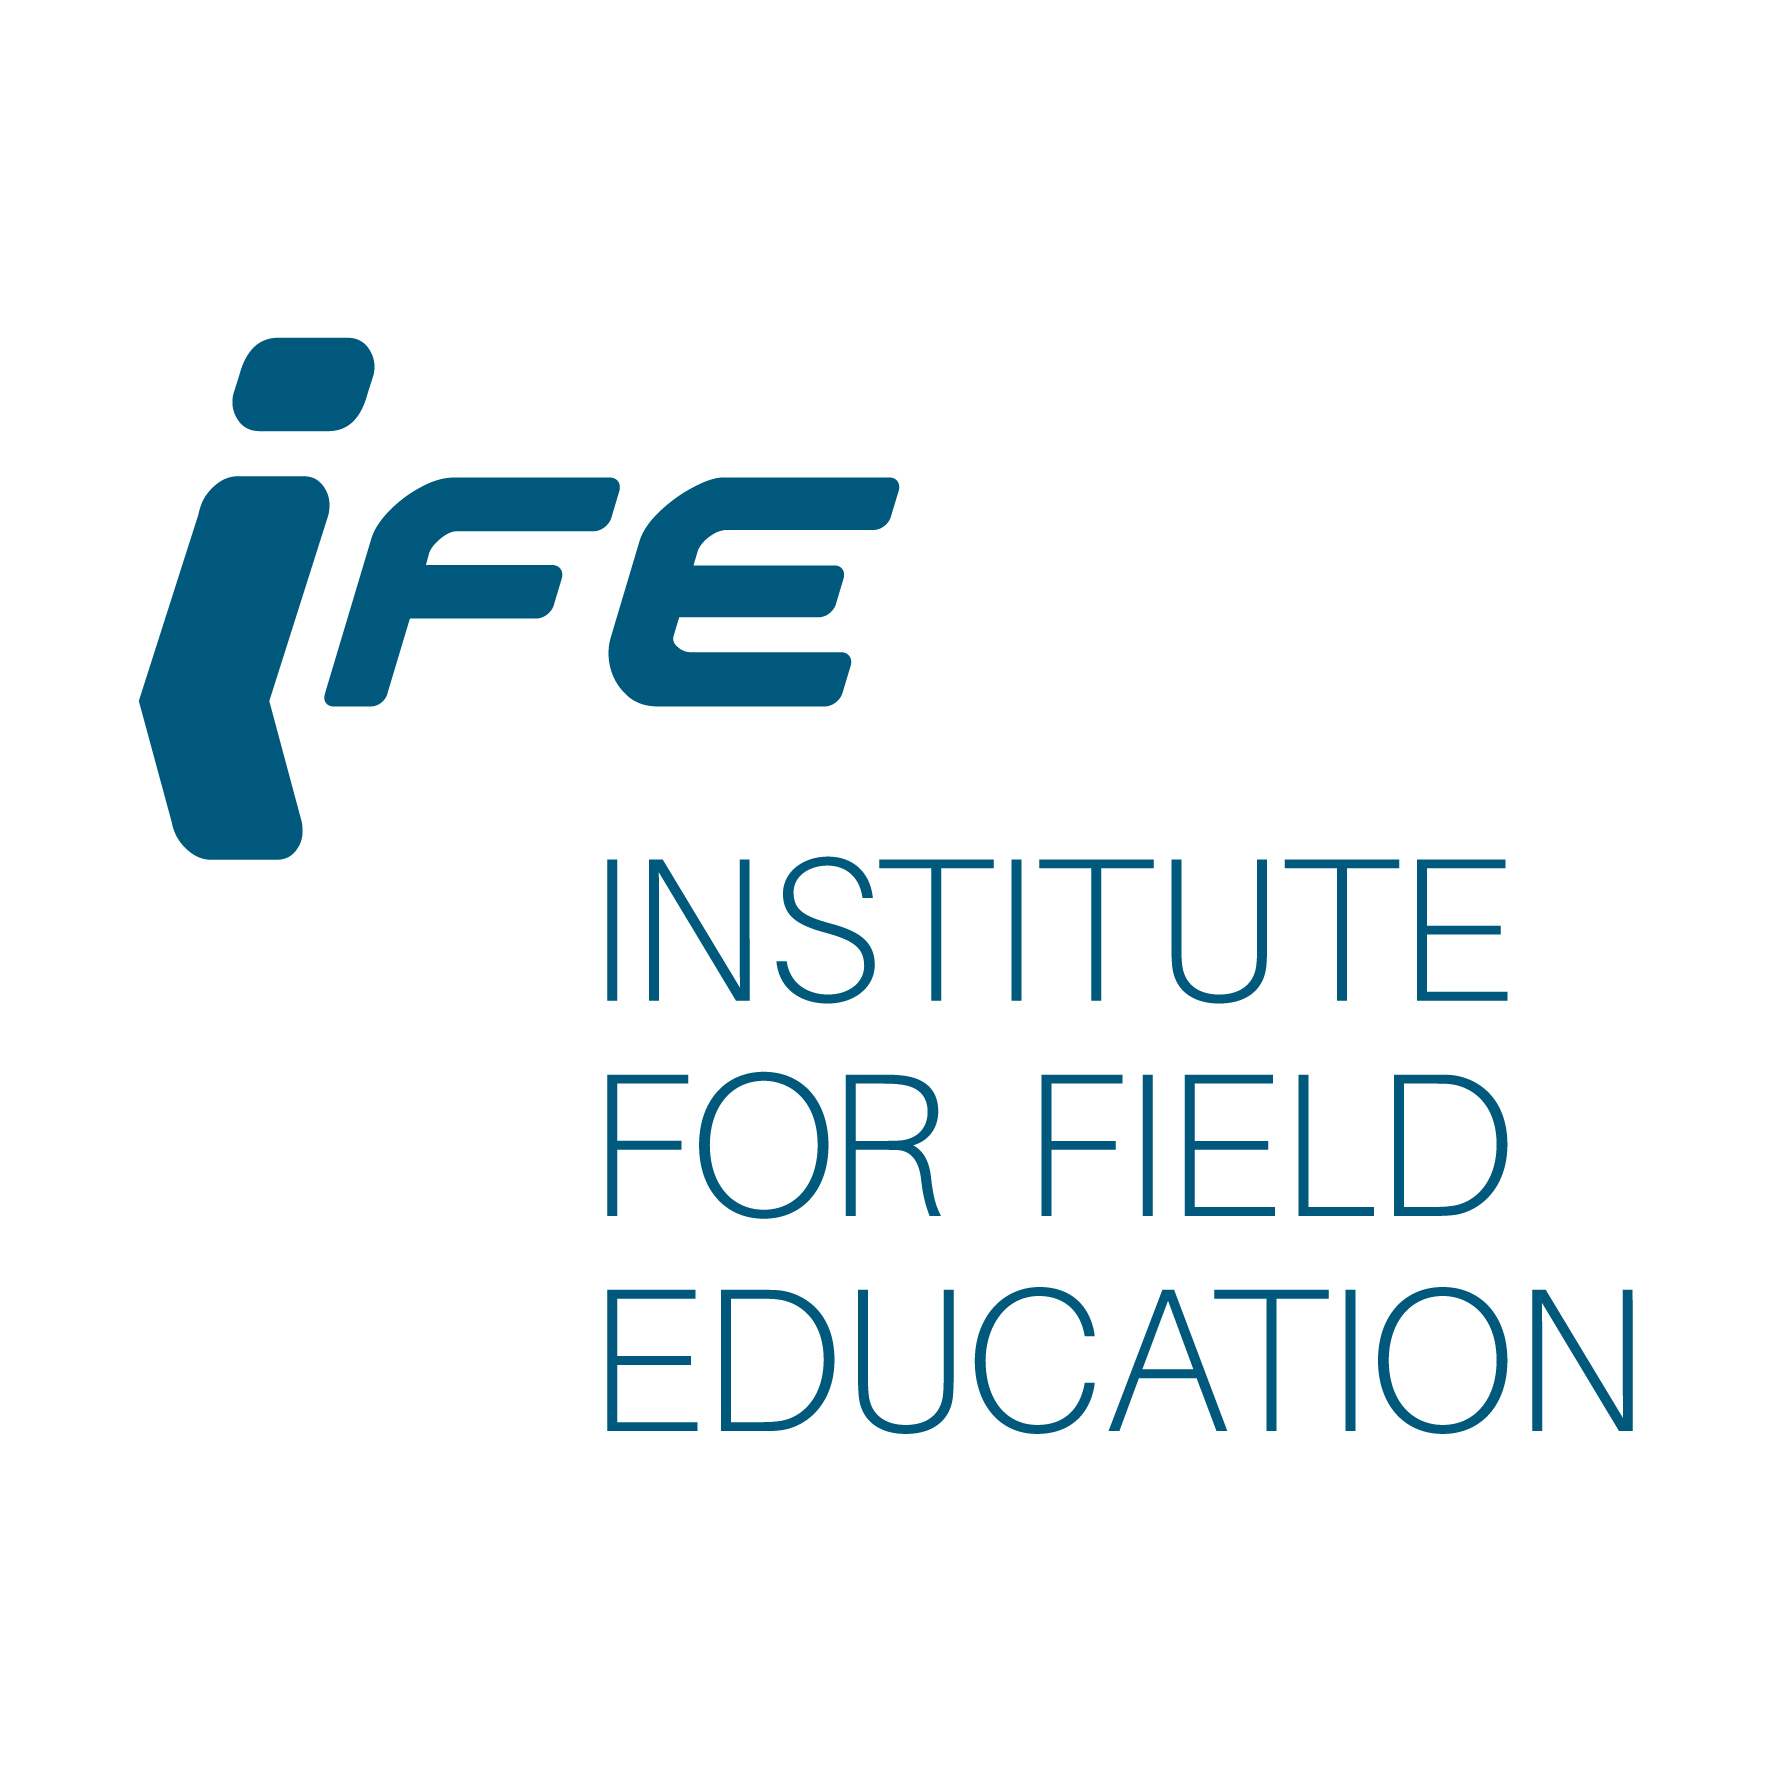 IFE logo features IFE in thick, blue, stylized letters in the top left corner with the words INSTITUTE FOR FIELD EDUCATION in thin blue lettering below and to the right.